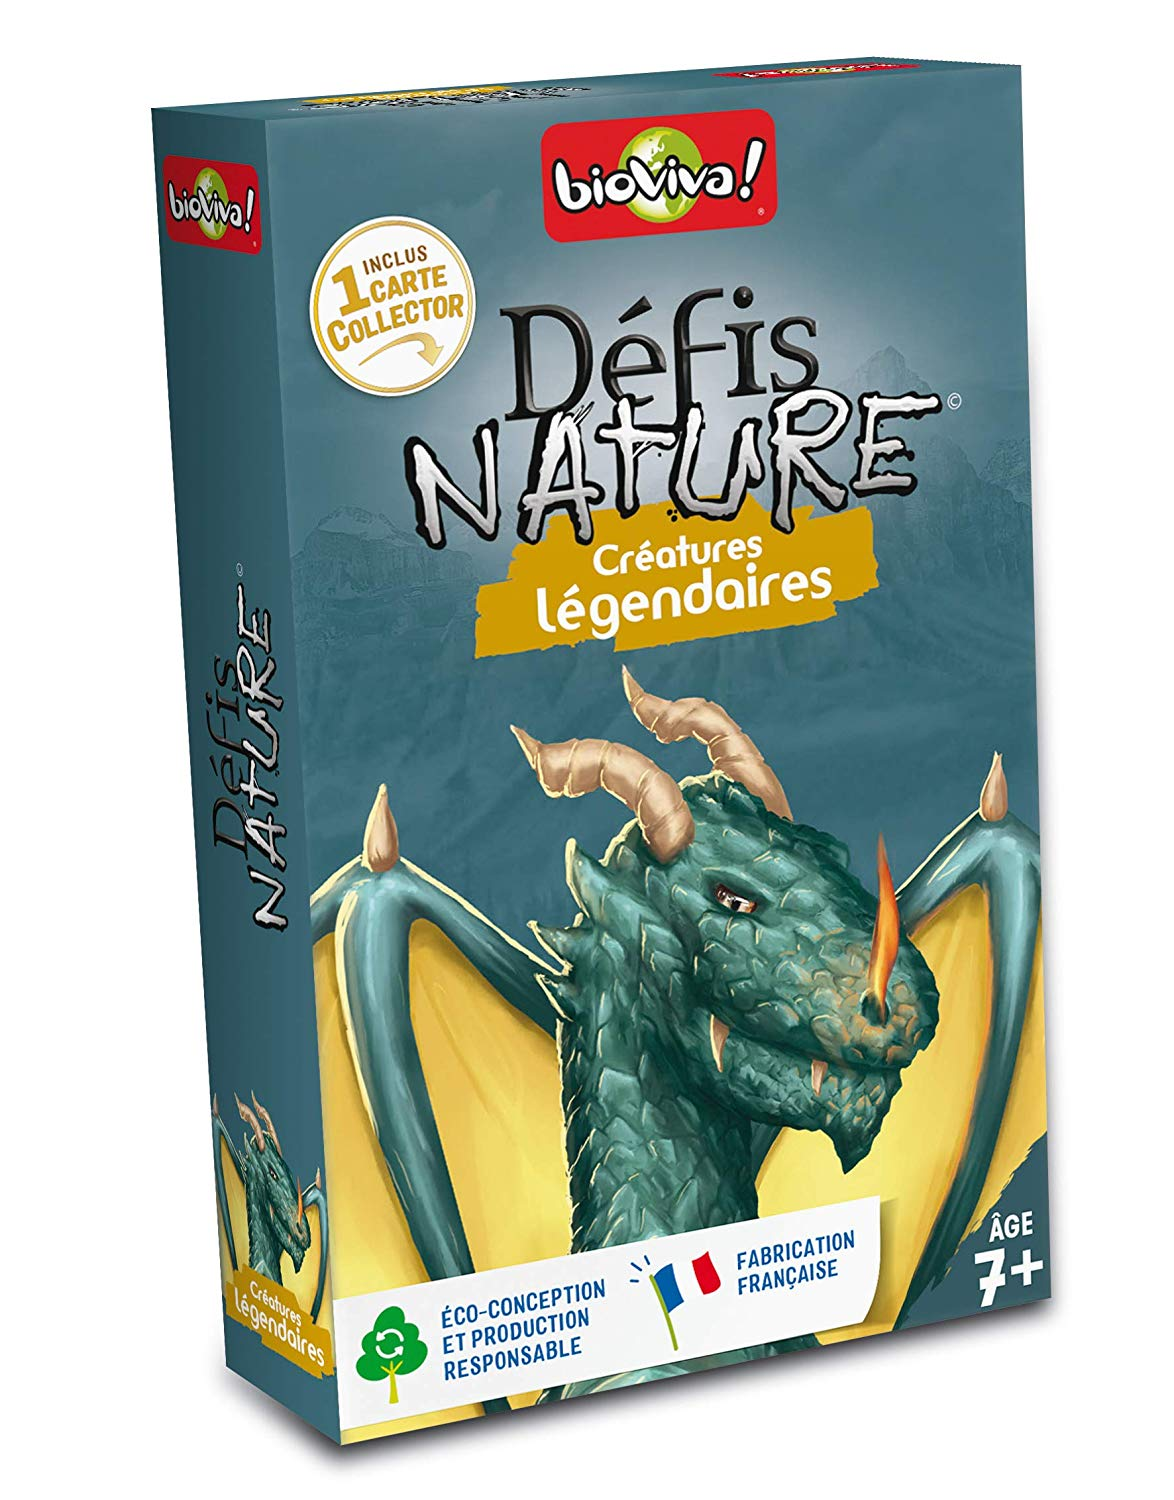 Bioviva 282628 Nature Challenges Animal-Legendary Creatures Card Game, Multi-Color